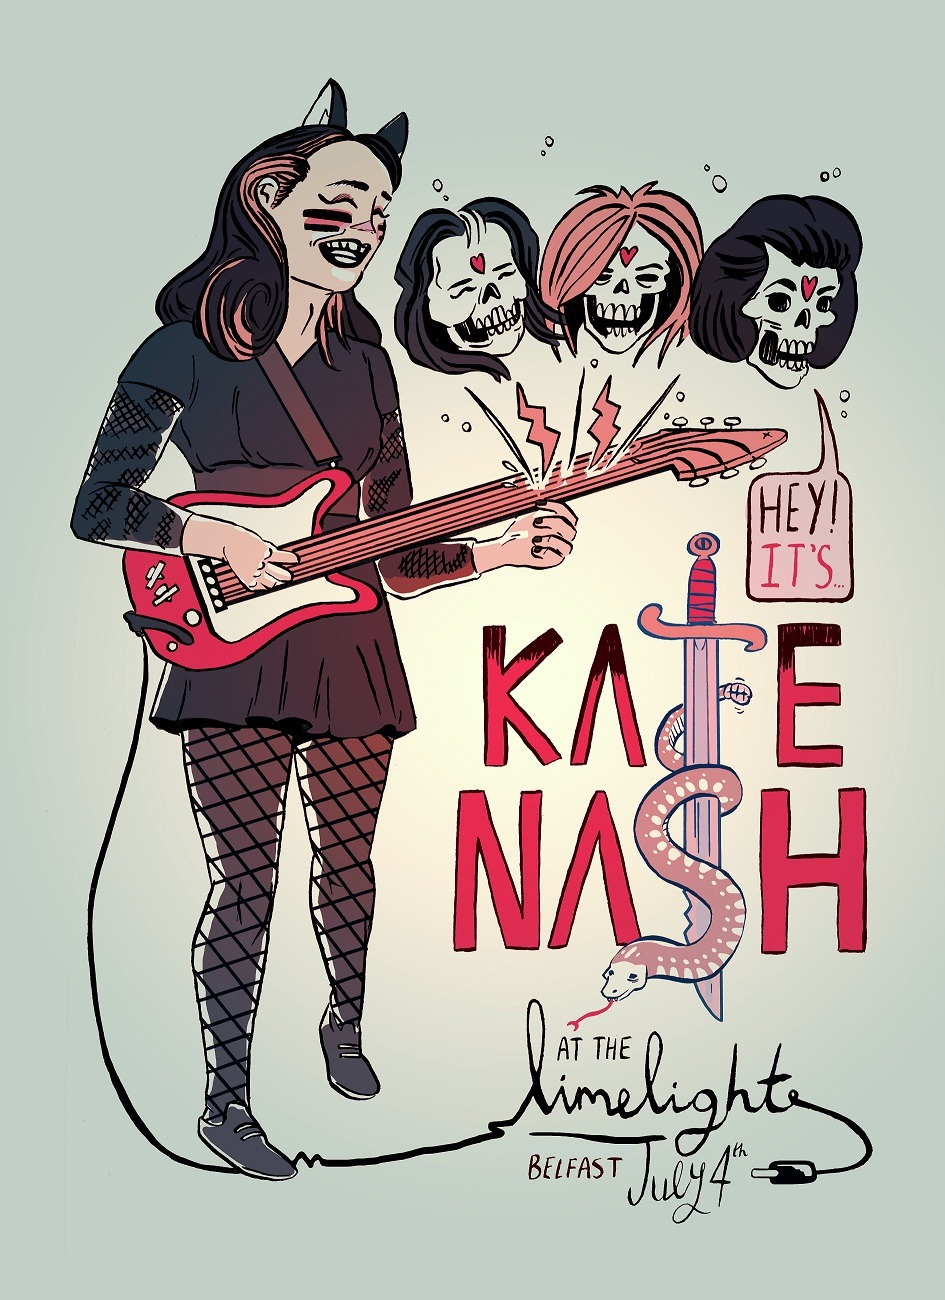 WOAH this is friggin awesome!! 400facts:  Gig poster produced for Kate Nash's upcoming gig in Belfast